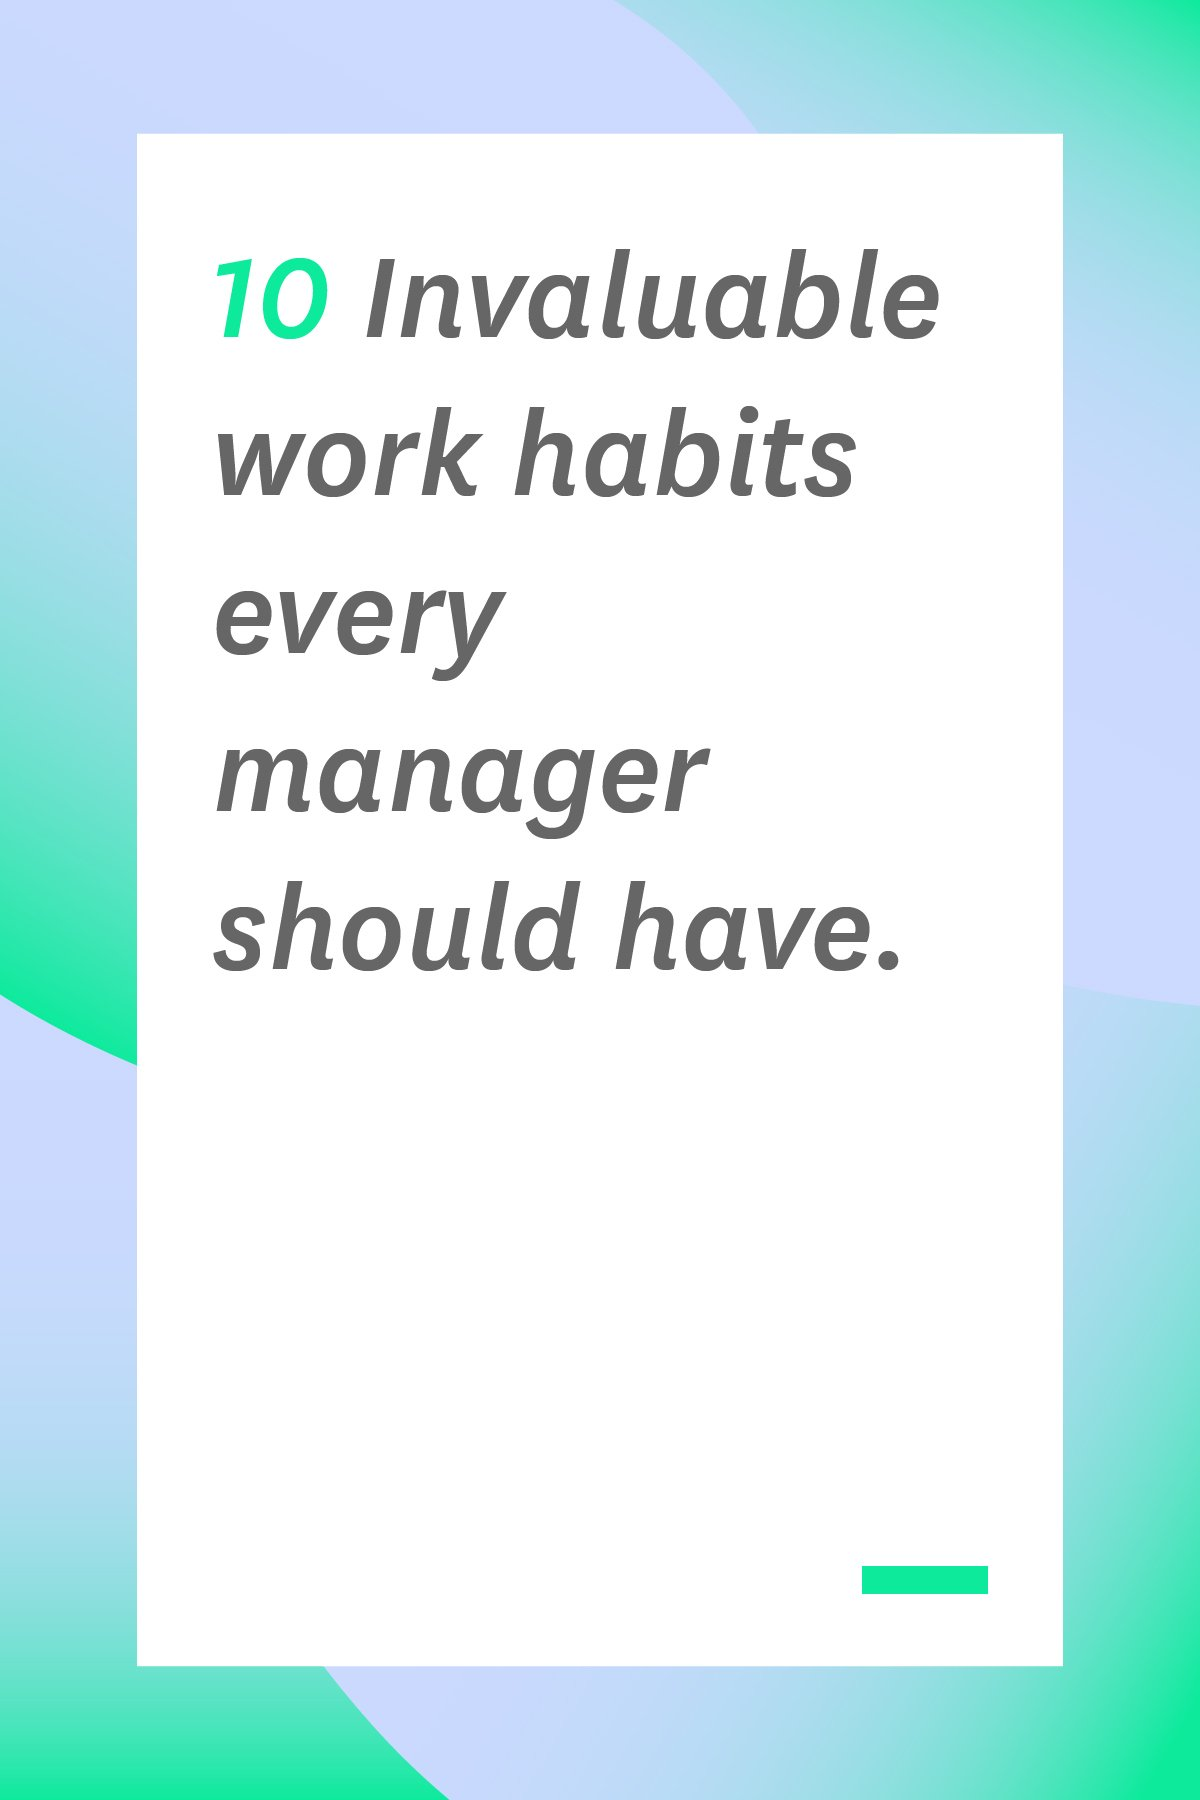 These work habits will help you stand out as a manager and motivate your team to be more productive too. #leadership #managertips